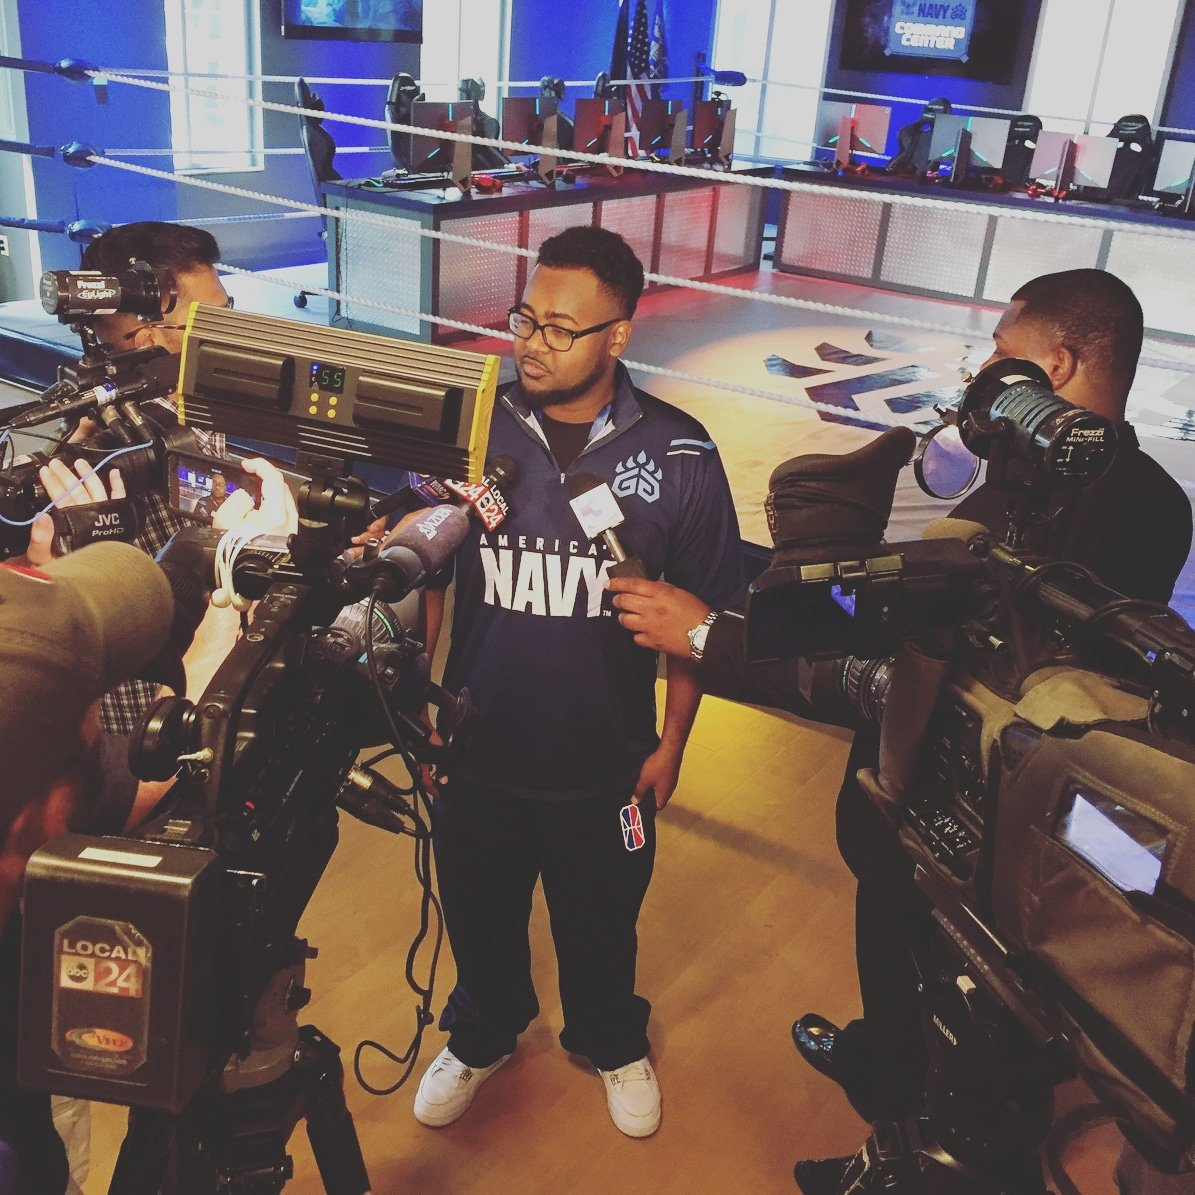 It was crazy to experience this moment right here. Never had so many cameras and reporters around me. Felt like a superstar 😂😂 Im just so blessed right now.